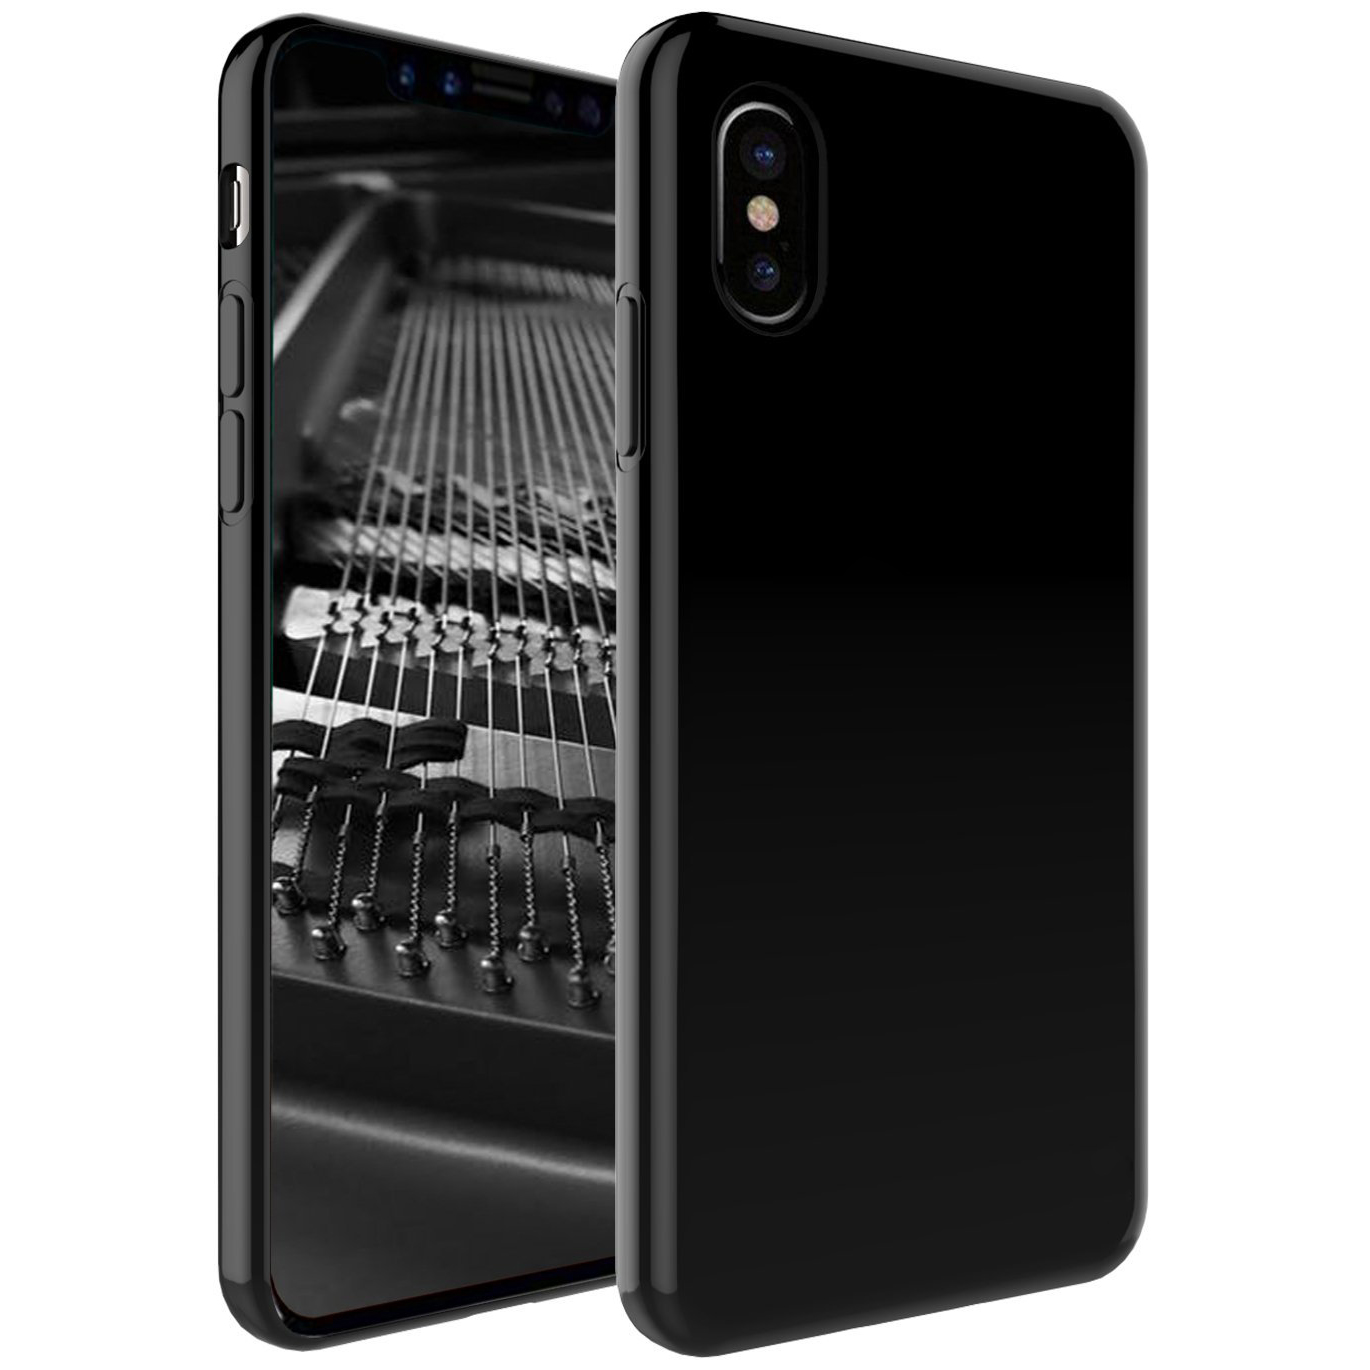 [REDshield] Apple iPhone X TPU Case, Slim & Flexible Anti-shock Crystal Silicone Protective TPU Gel Skin Case [Black]